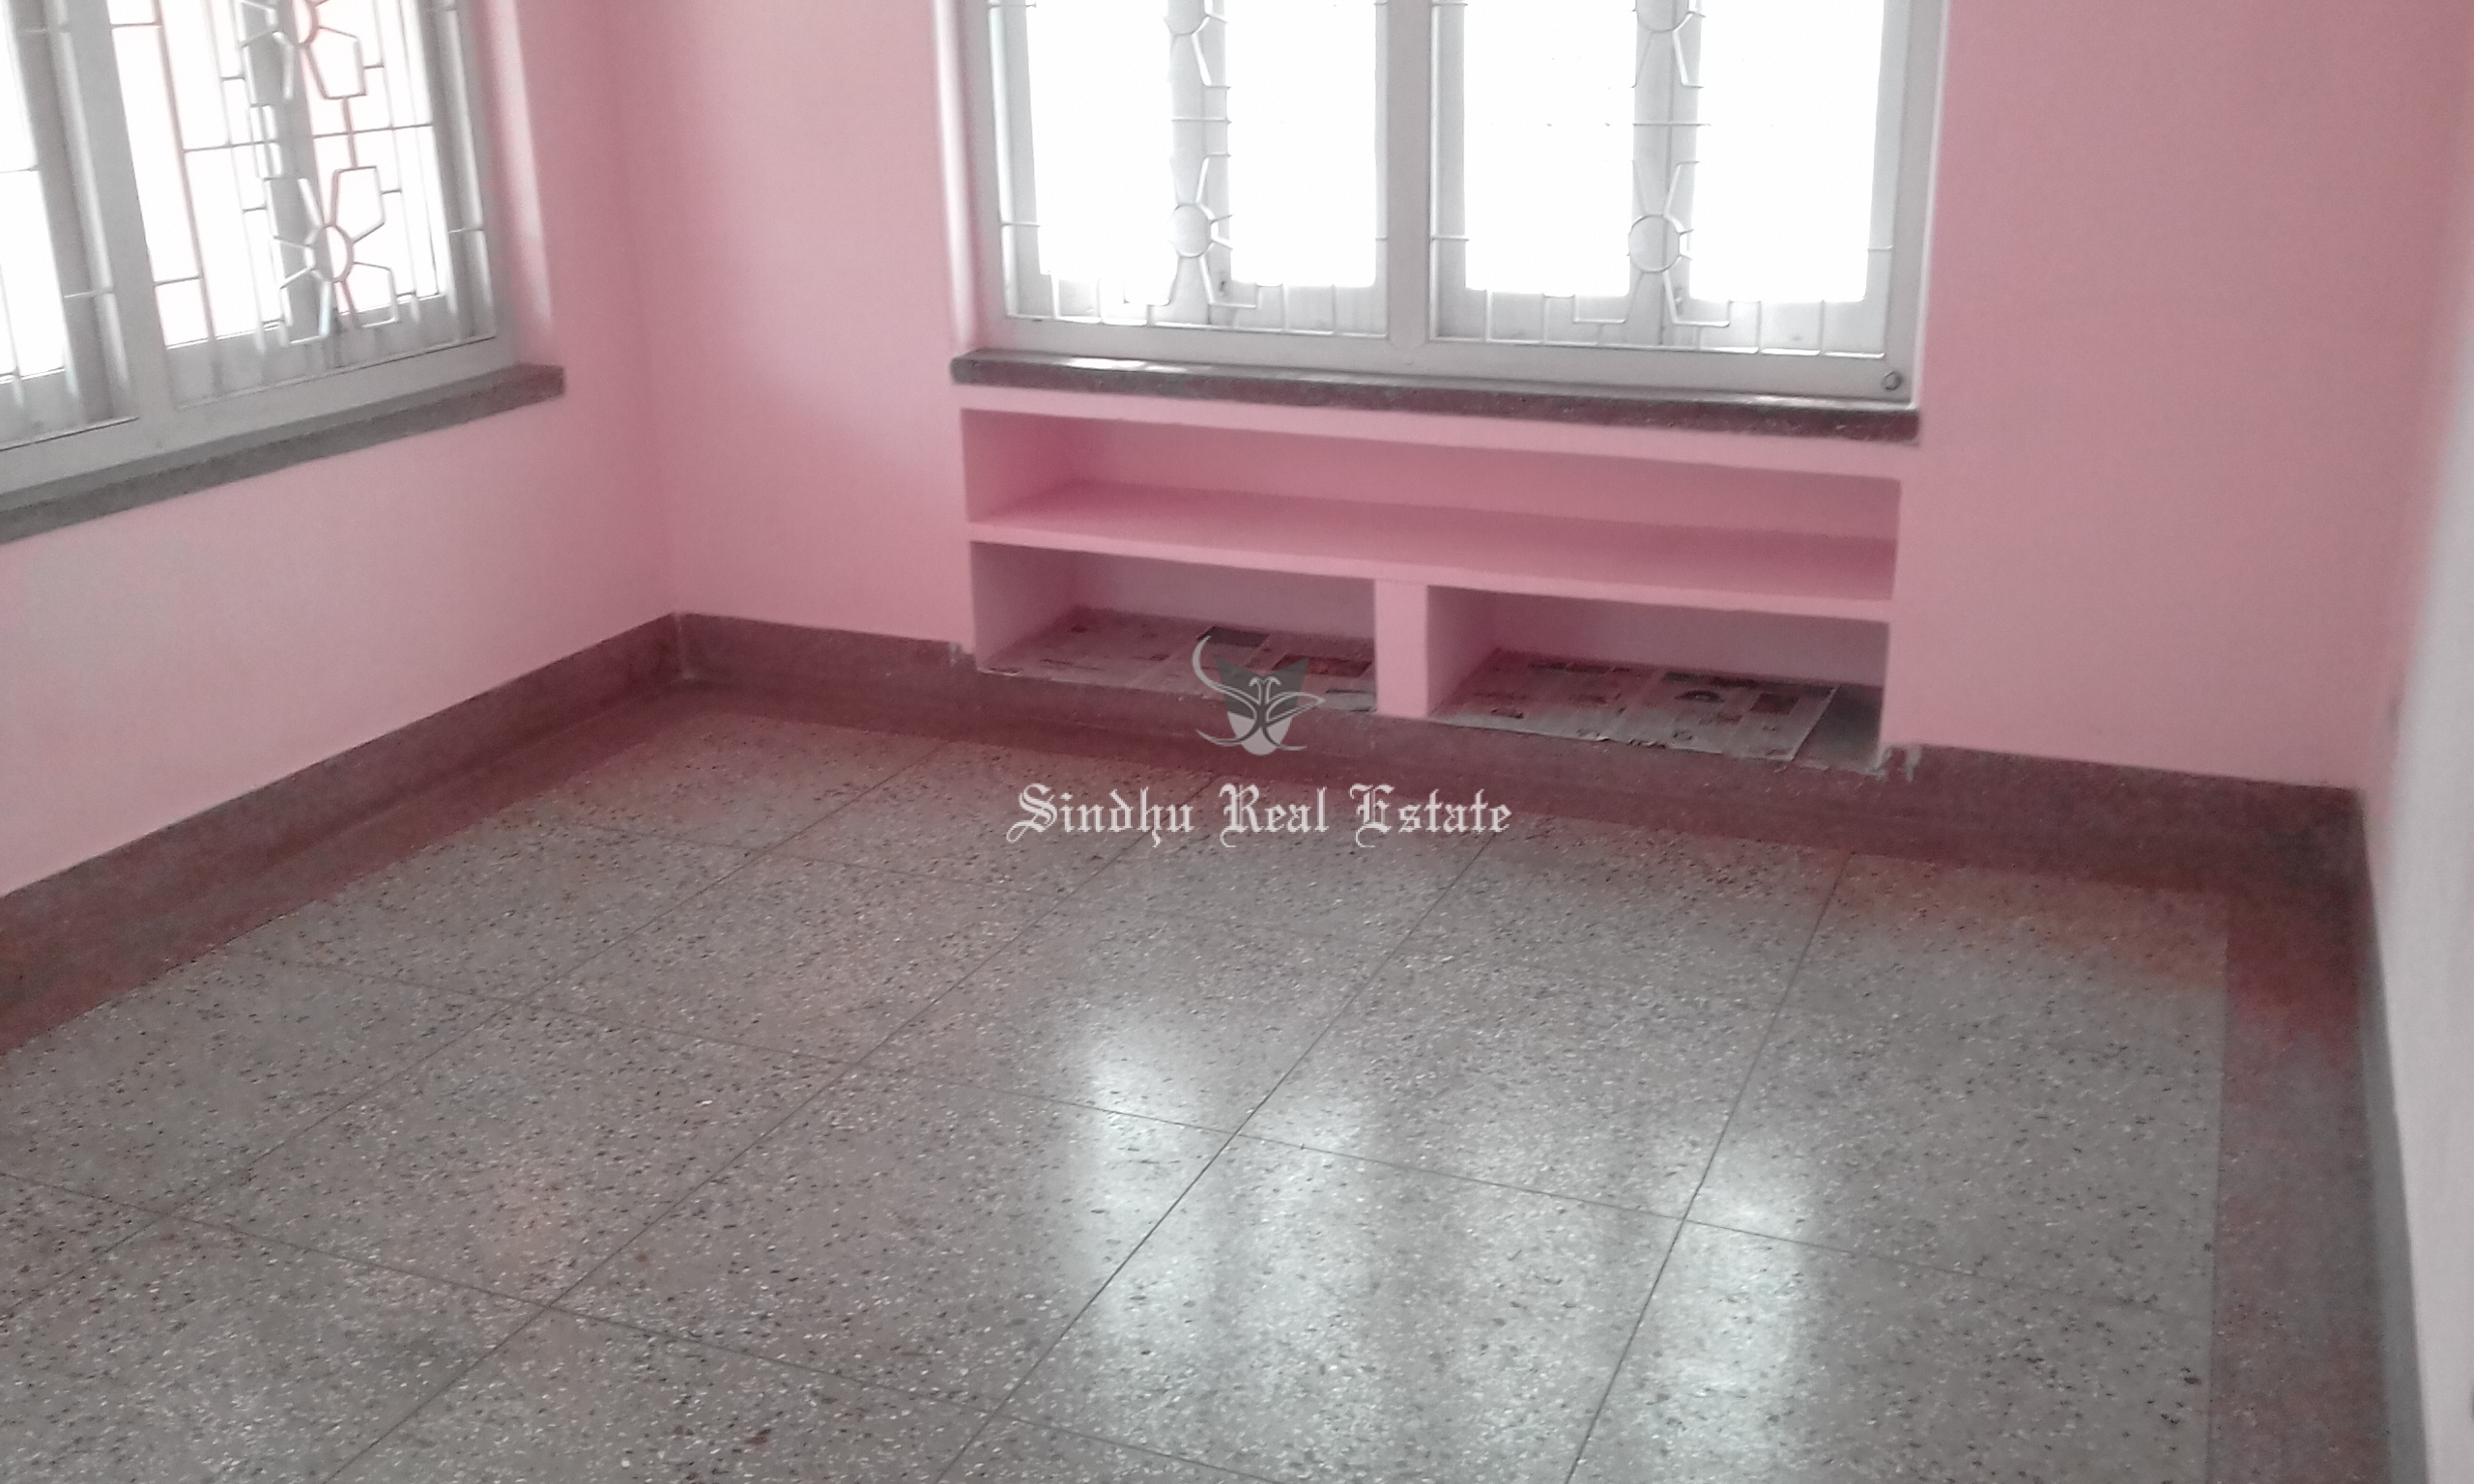 2.25 Katha residential house  for sale in Salt lake city